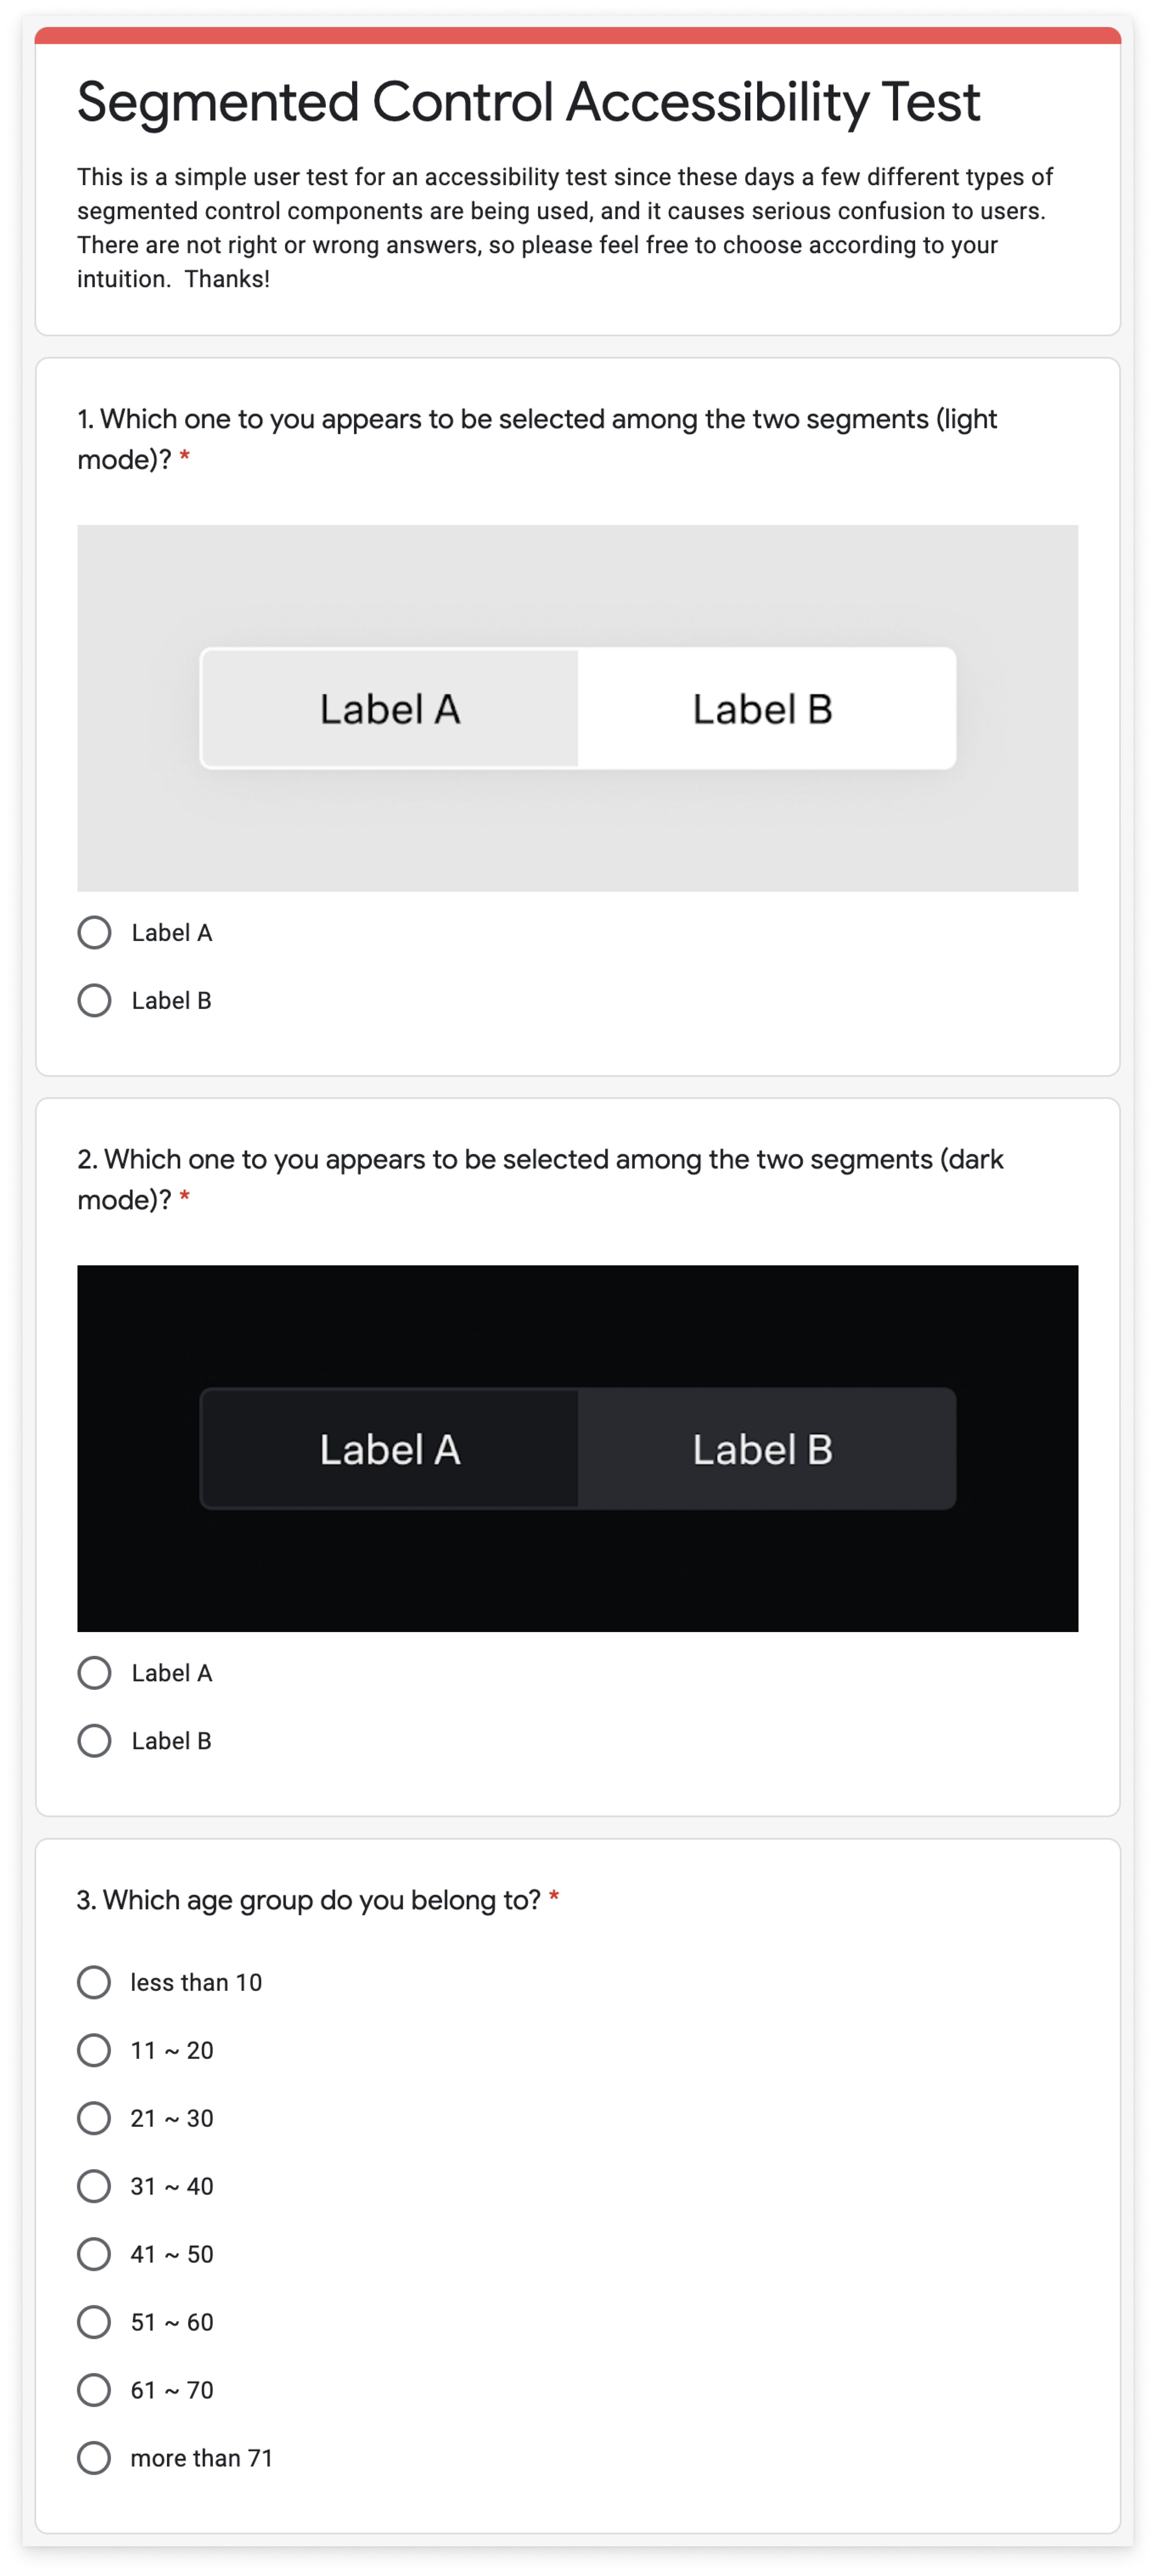 User survey form for Segmented Control research